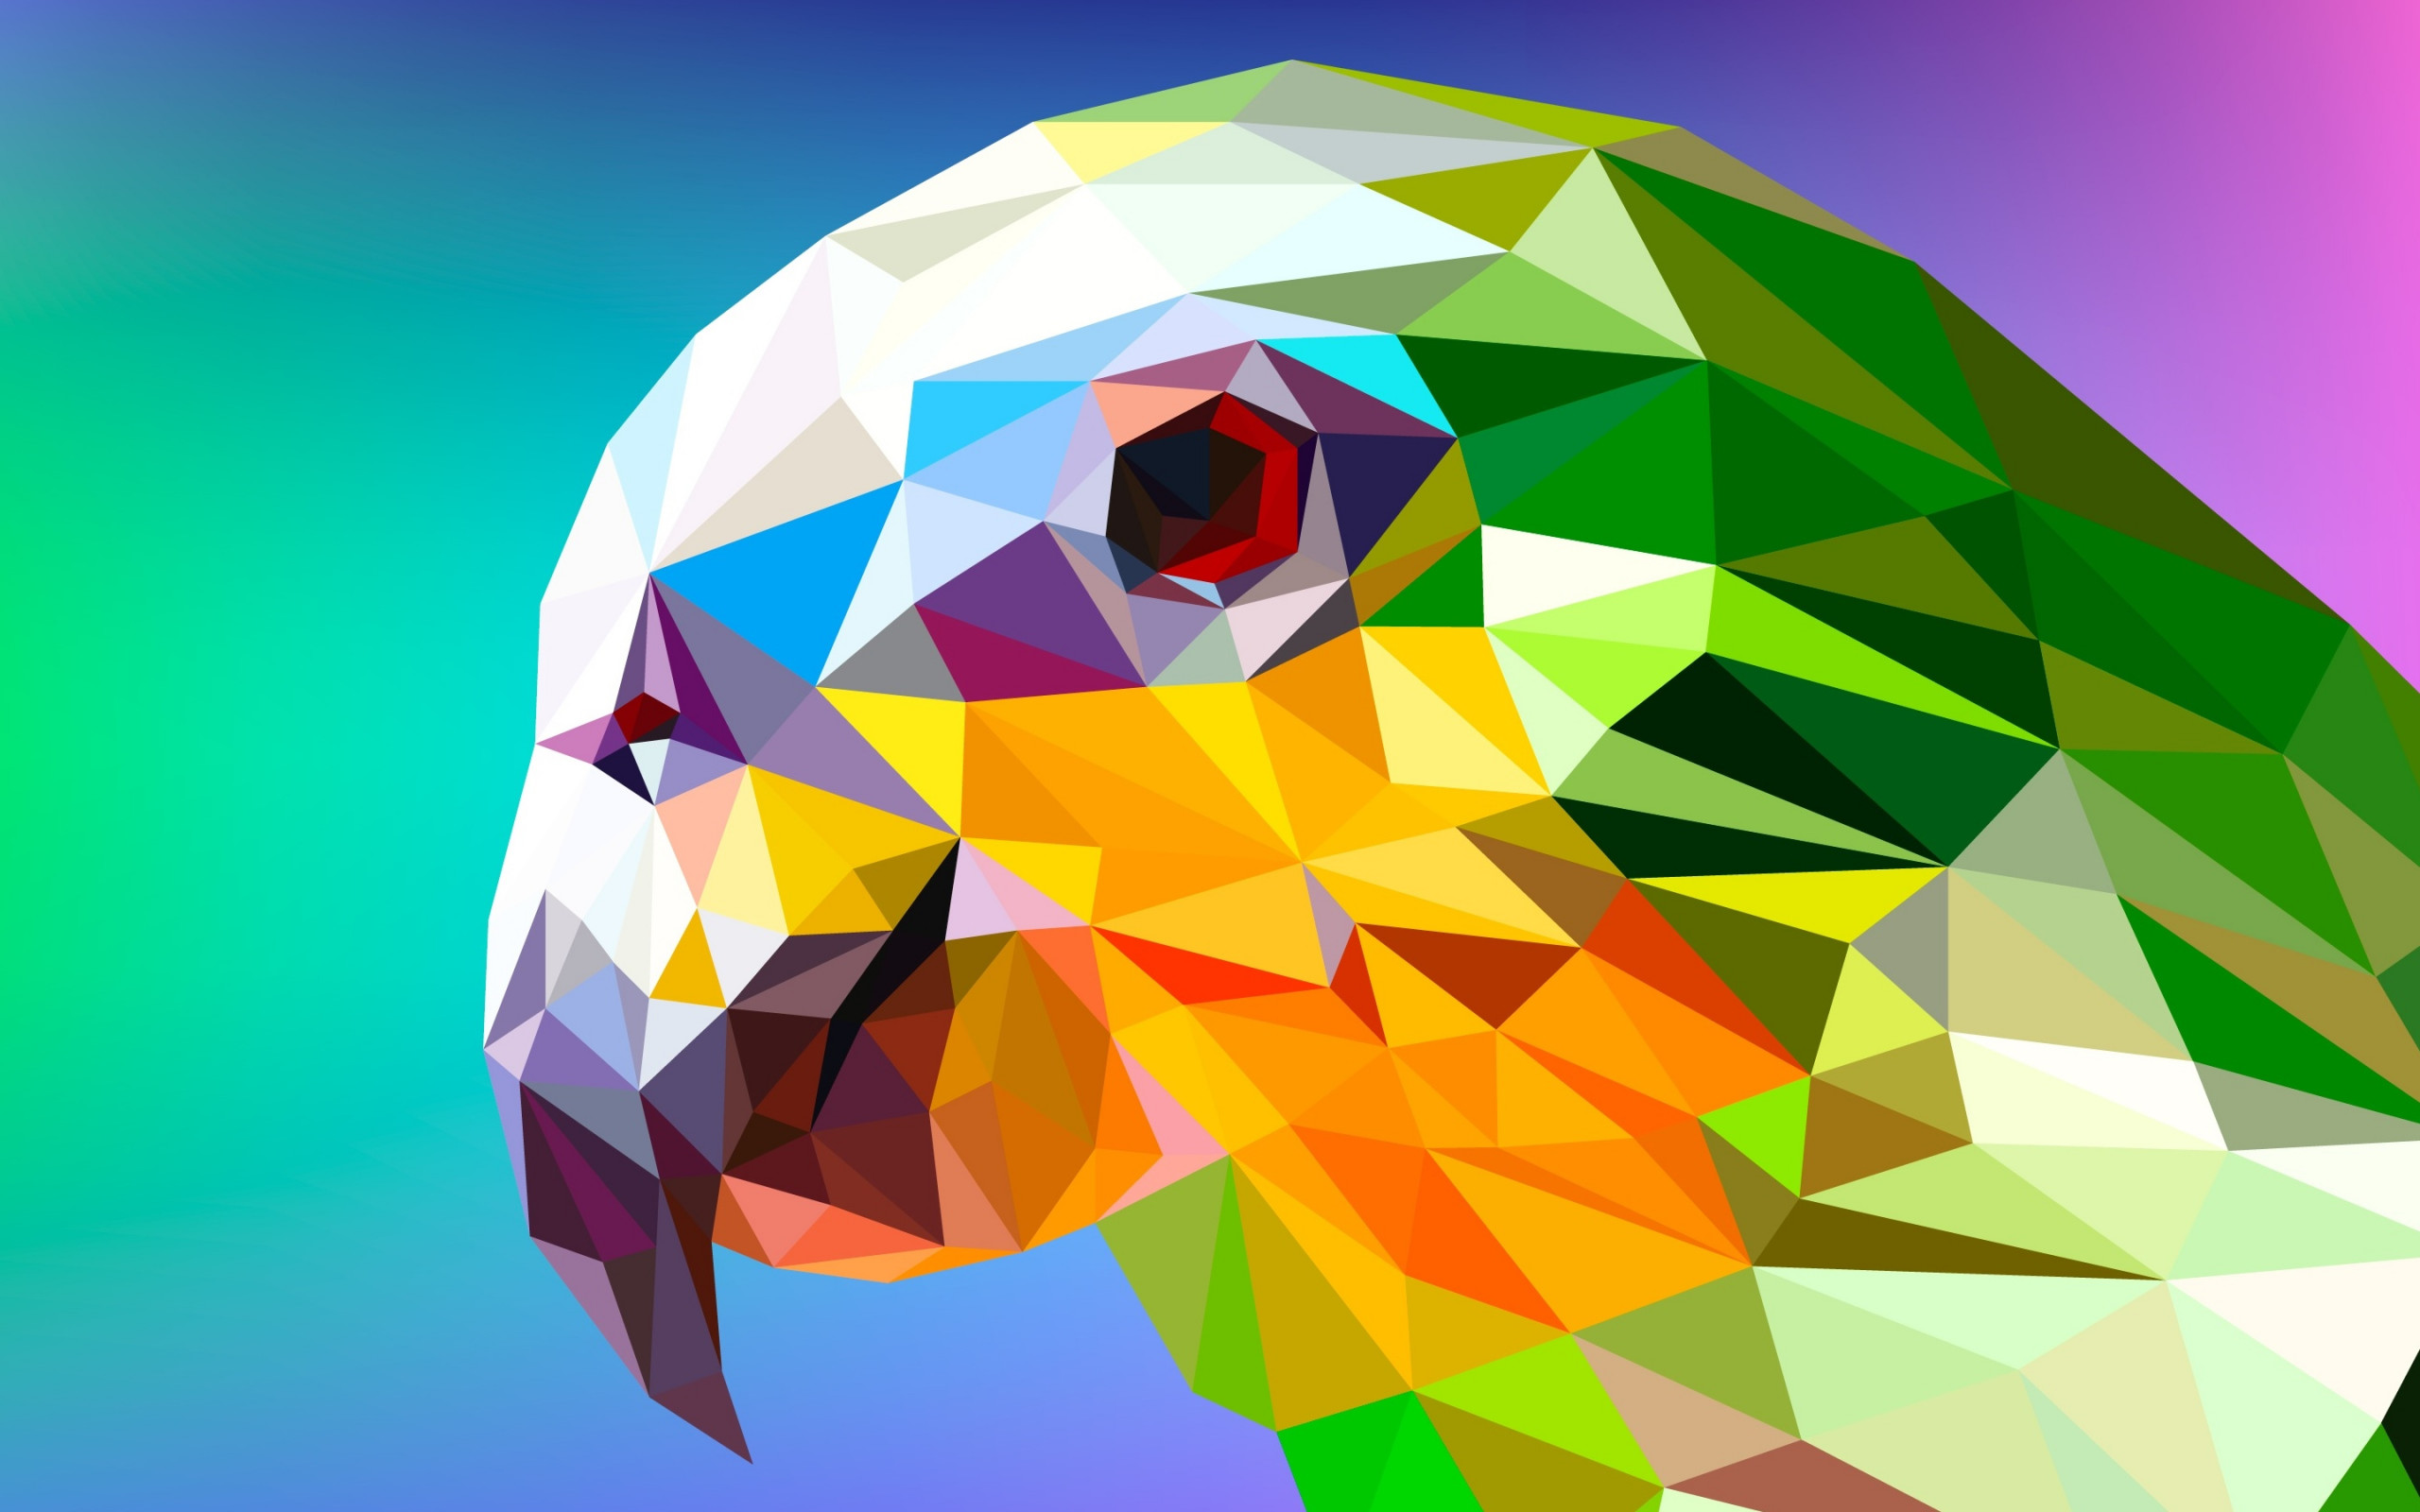 Low Poly Illustration: Parrot | 2560x1600 wallpaper